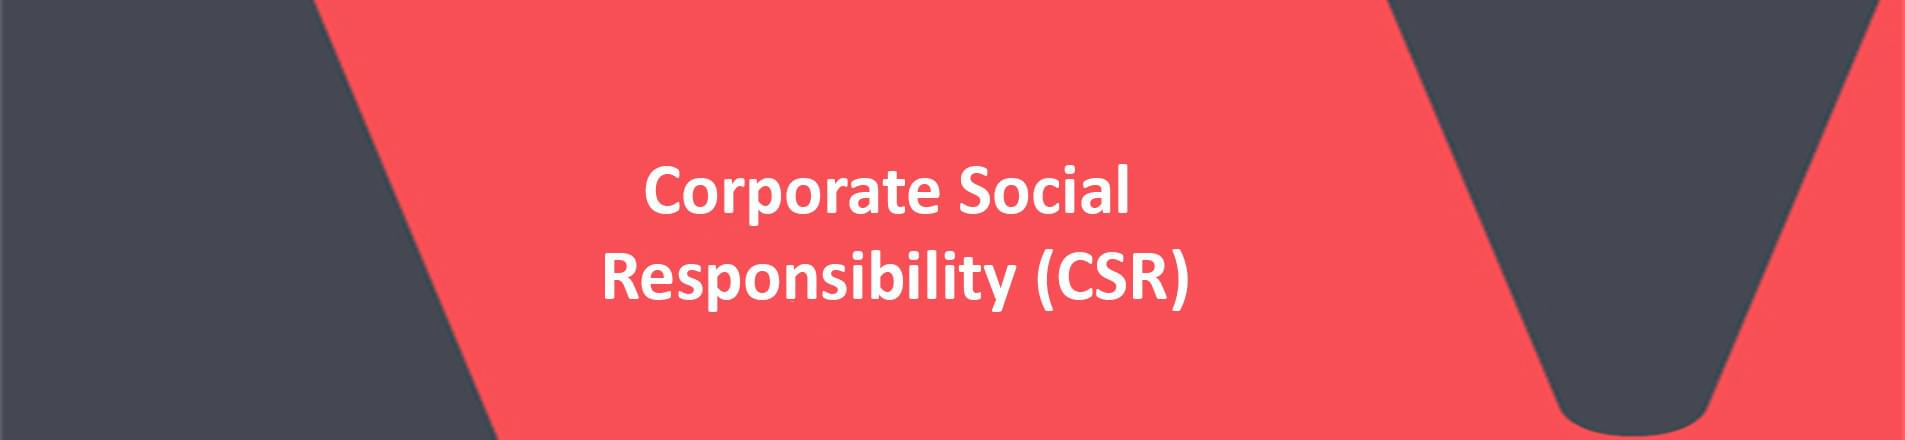 red banner with with white text reading corporate social responsibility (CSR)